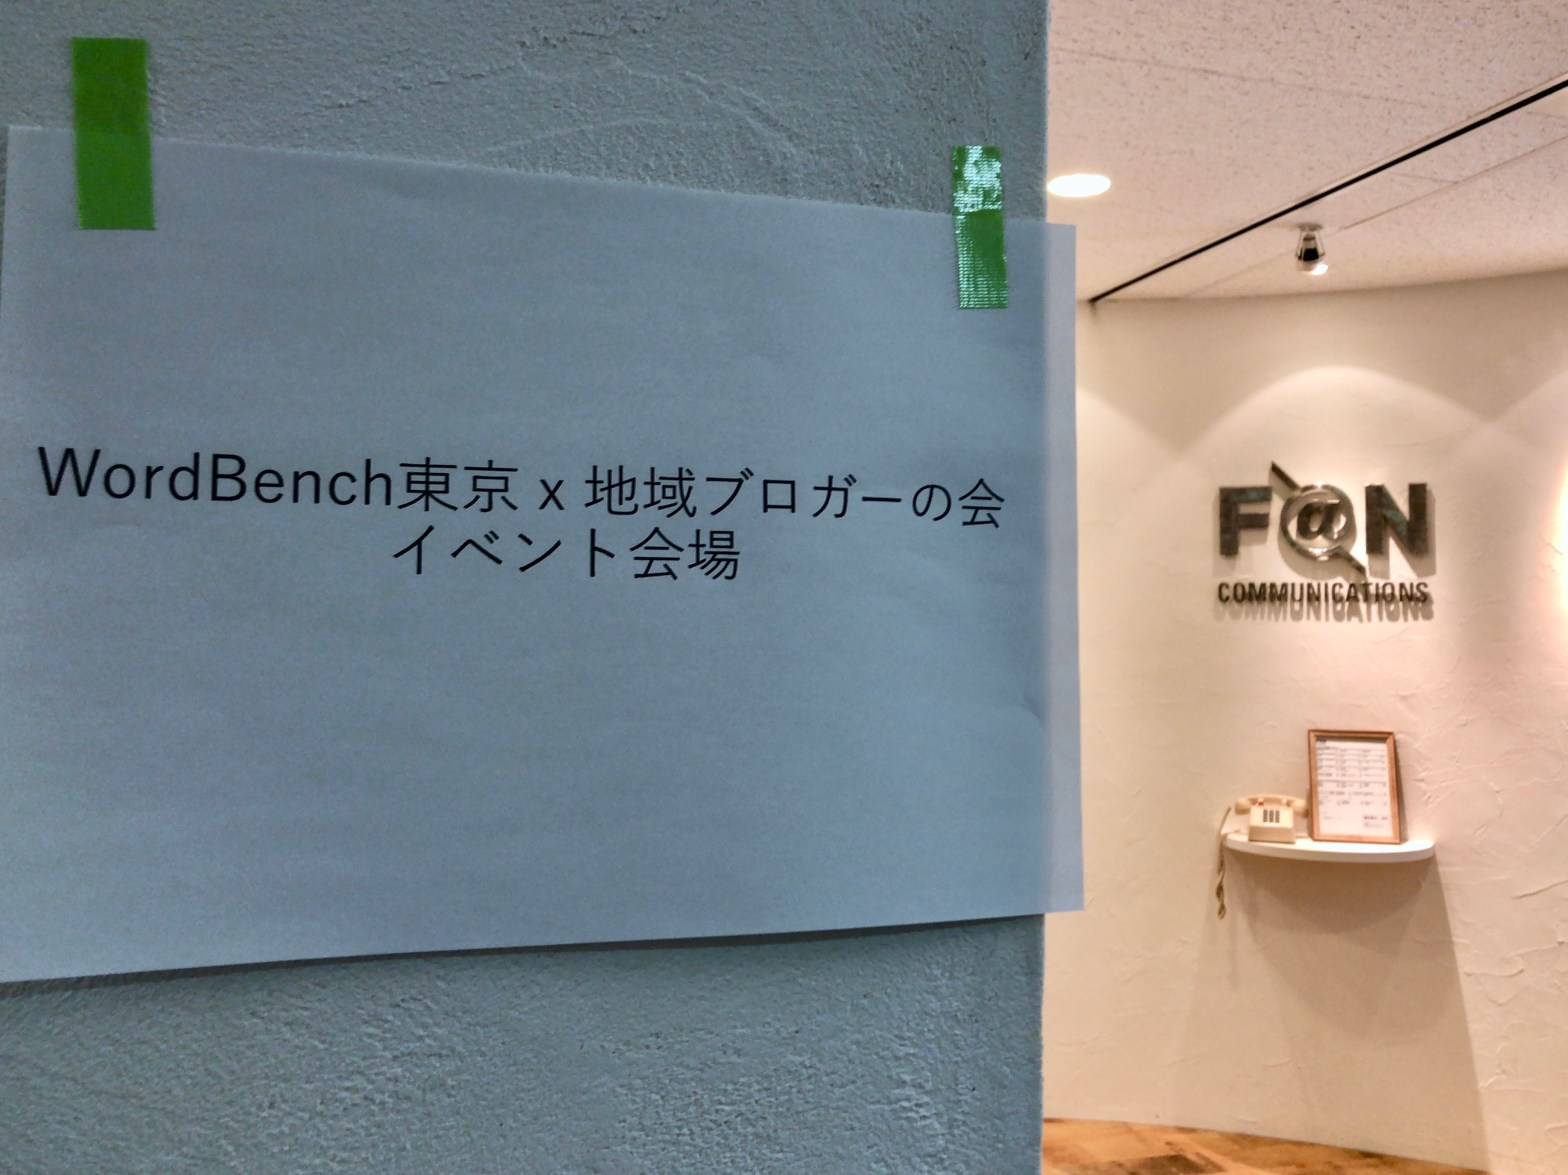 WordBench 東京 × 地域ブロガーの会